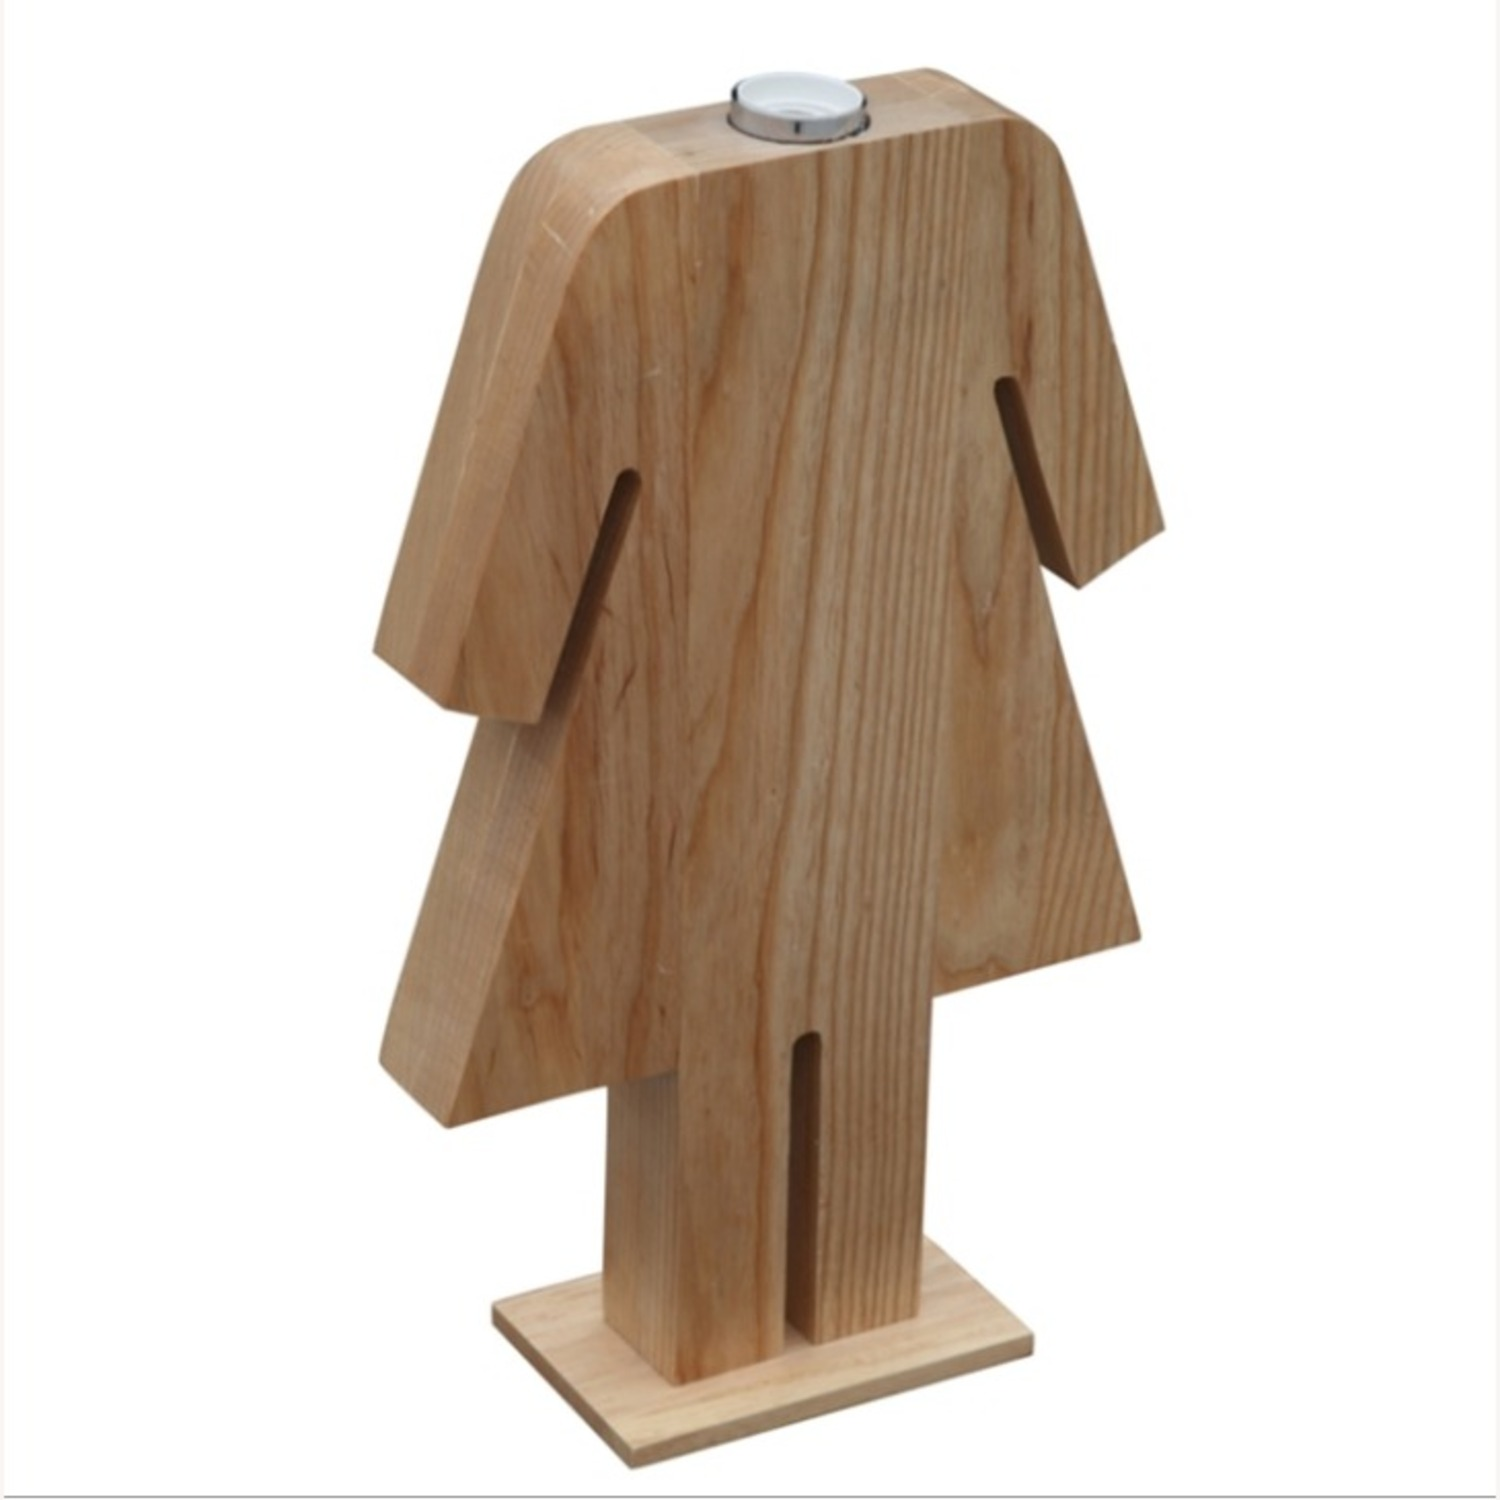 Table Lamp In Natural Wood W/ Female Person Design - image-2